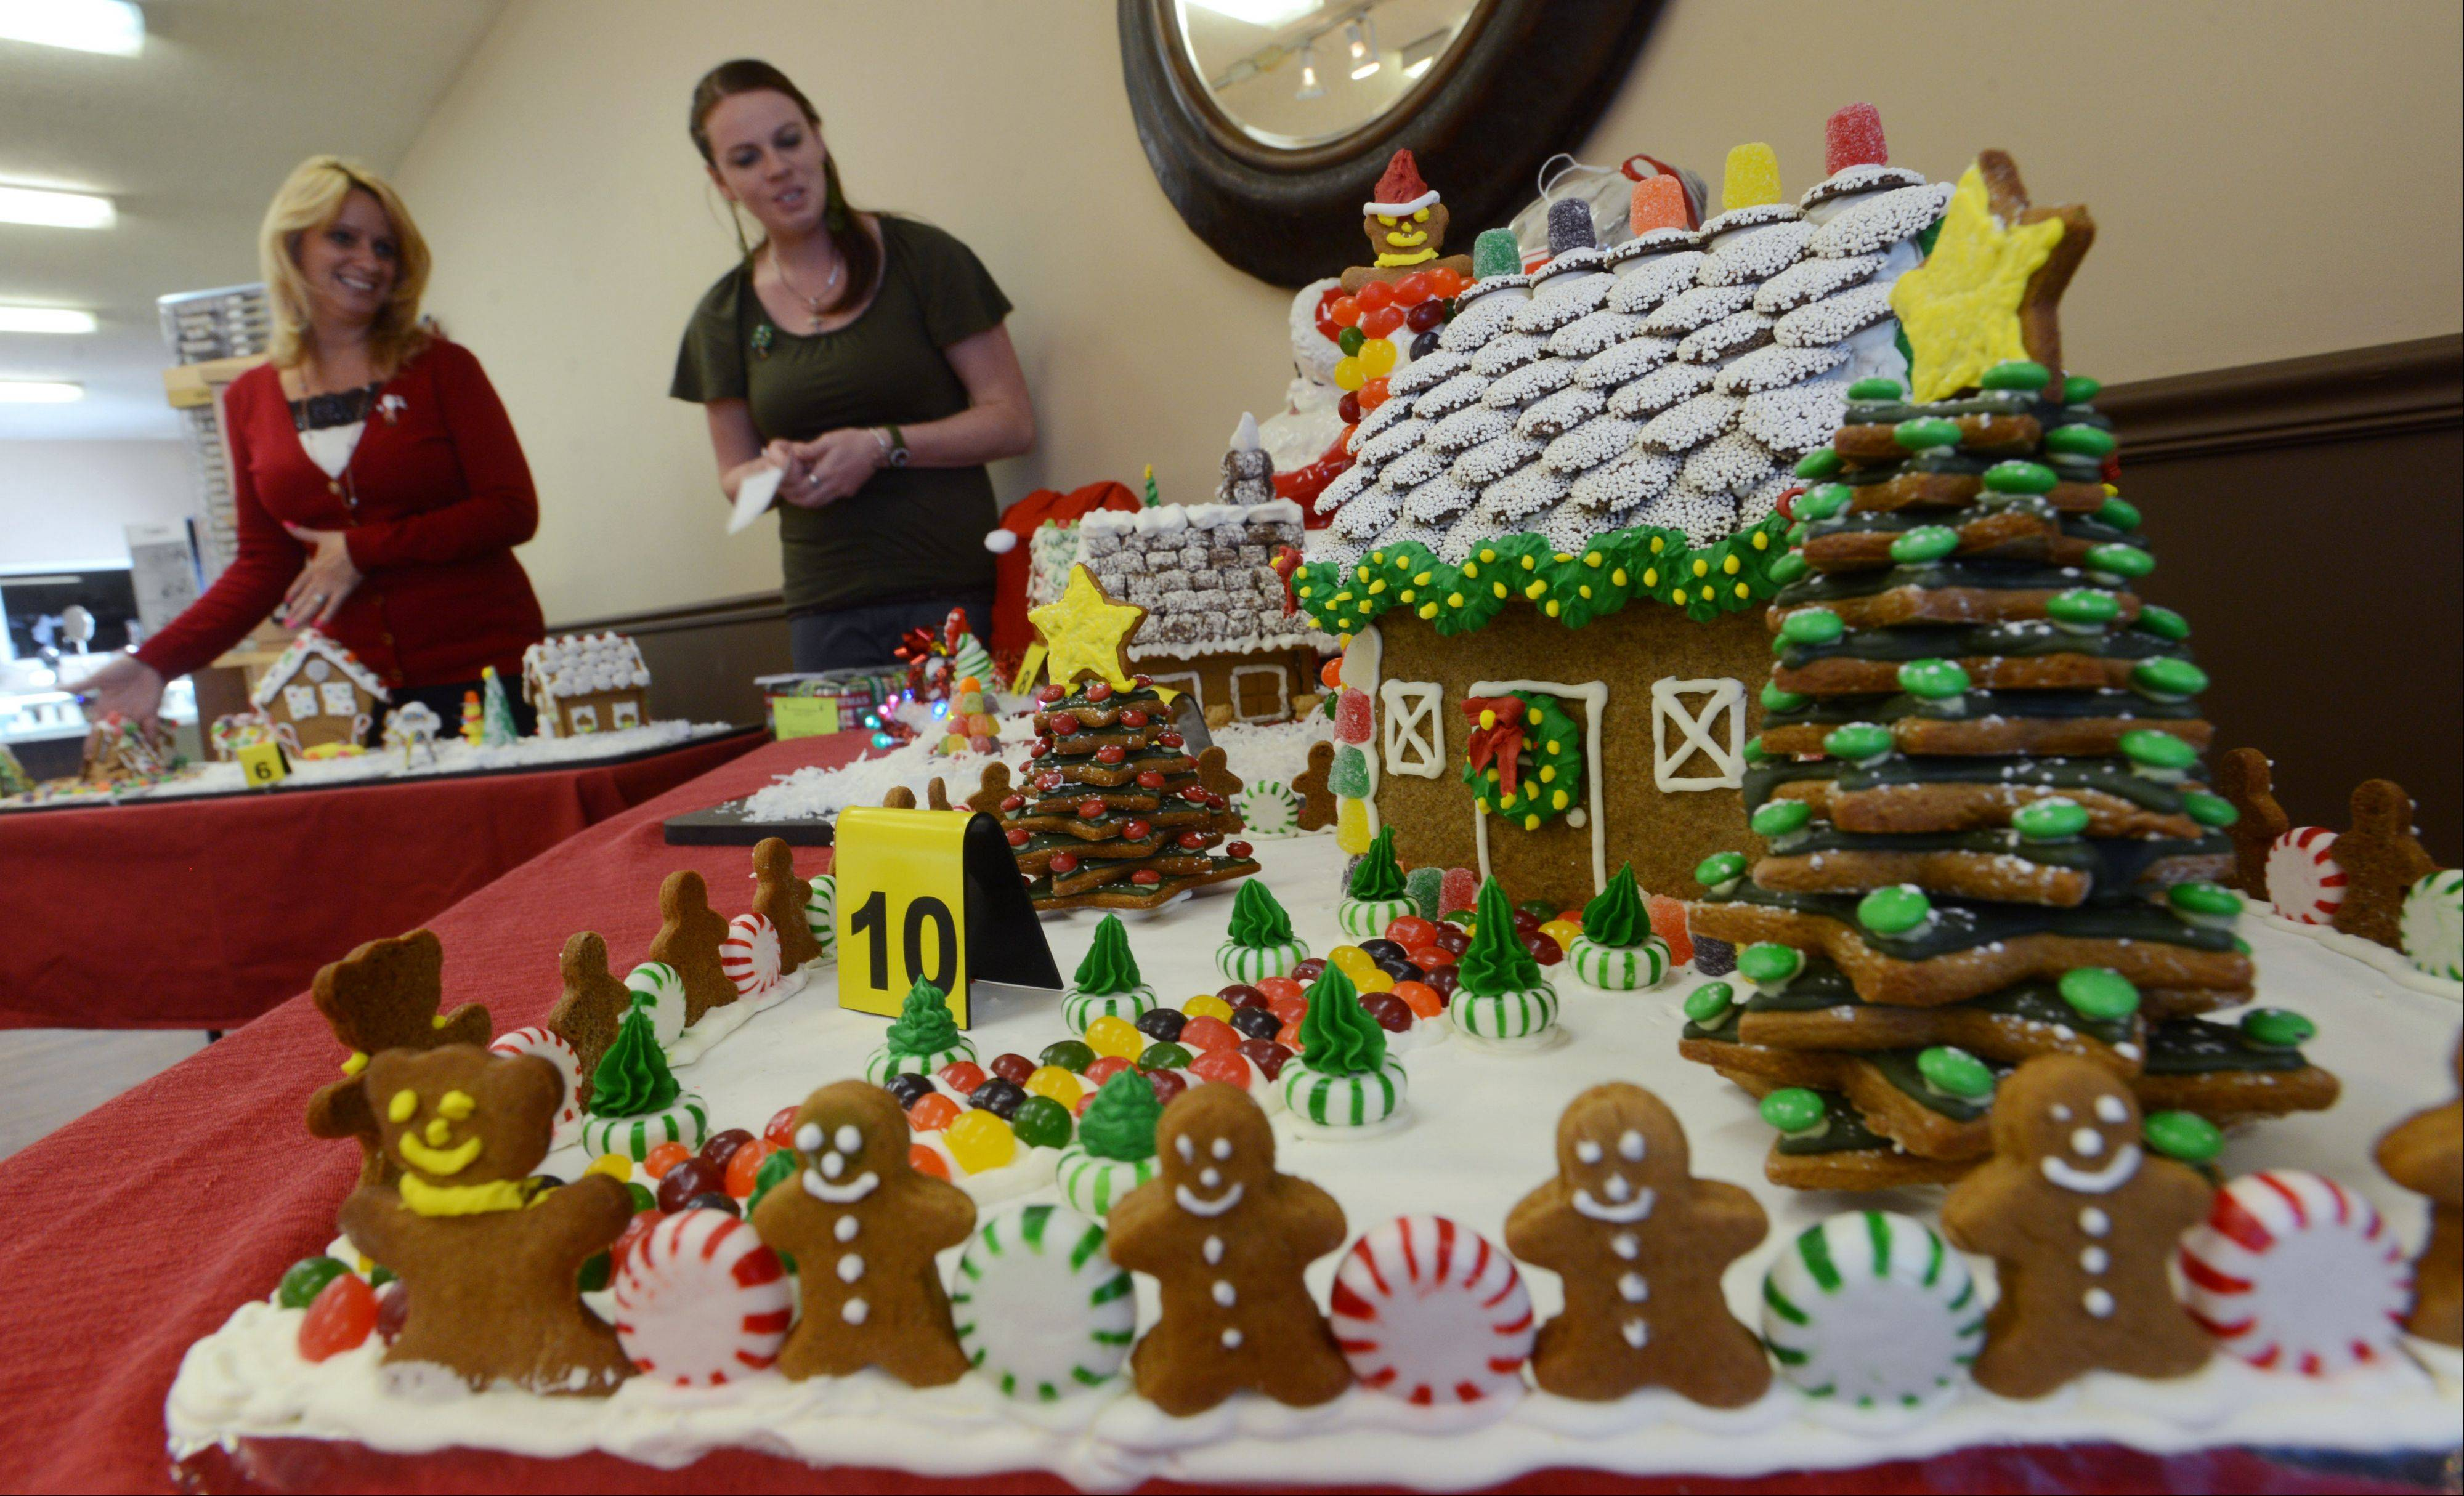 Ruth Hogan, left, and her daughter, Renee Evans, co-owners of Paradise Jewelry & Treasures in Fox Lake, look over the six gingerbread houses on display in their store. Monday was the final day to vote for the 7th annual Fox Lake Area Chamber of Commerce & Industry gingerbread house contest.